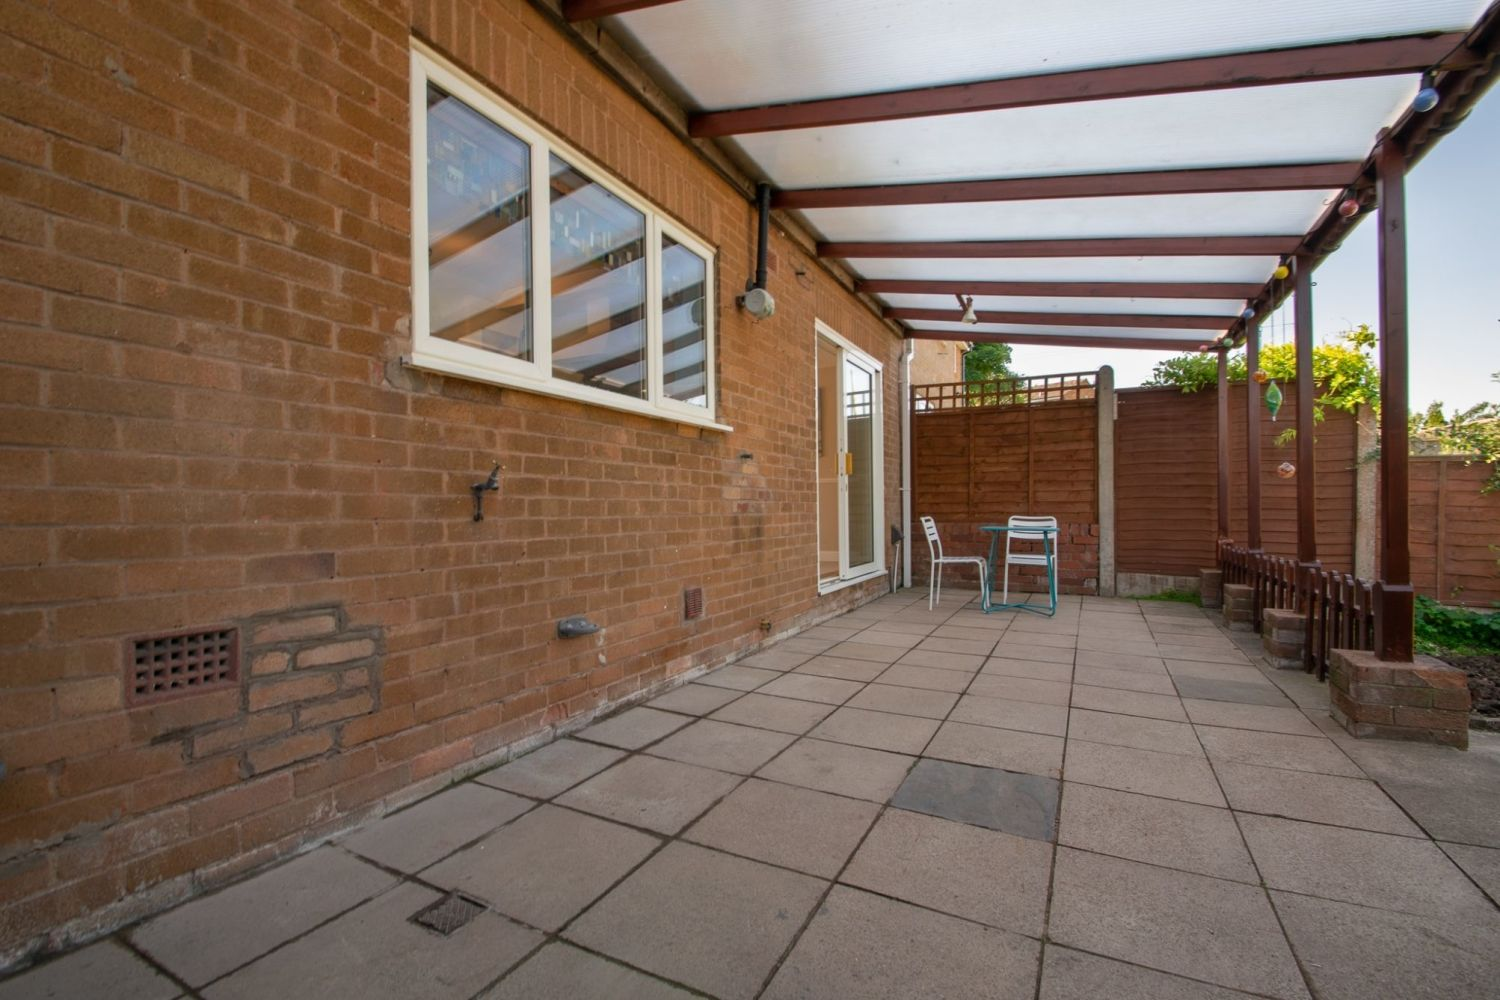 3 bed terraced for sale in Waverley Crescent, Romsley  - Property Image 17